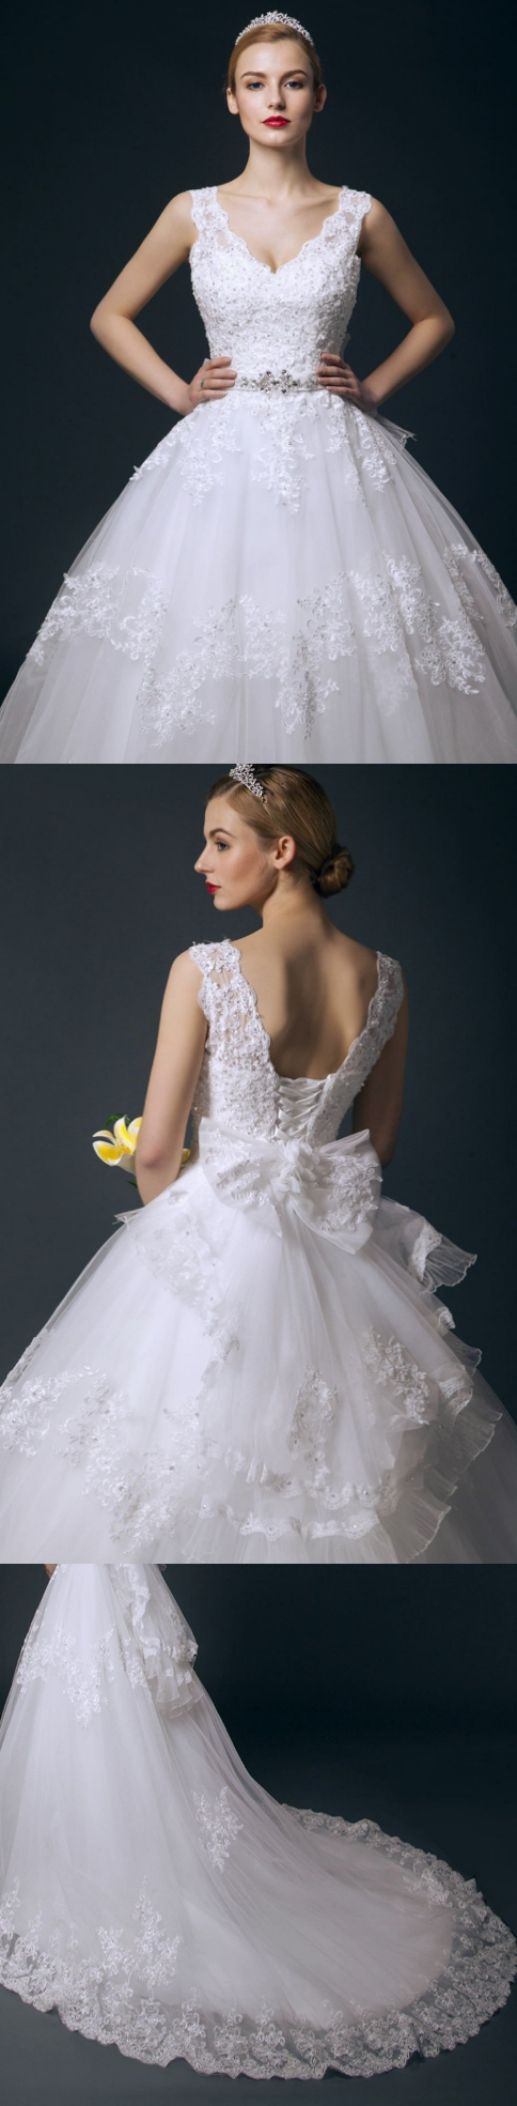 Ball Gown Wedding Dresses, White Wedding Dresses, Long Wedding Dresses, Long White Wedding Dresses With Bowknot Cathedral Train V-Neck Sale Online, Long White dresses, Ball Gown Wedding Dresses, Discount Wedding Dresses, Wedding Dresses Online, Ball Gown Dresses, White Long Dresses, Online Wedding Dresses, Wedding dresses Sale, Wedding Dresses Ball Gown, Wedding dresses Train, White dresses Long, Long Train Wedding Dresses, White Gown Dresses